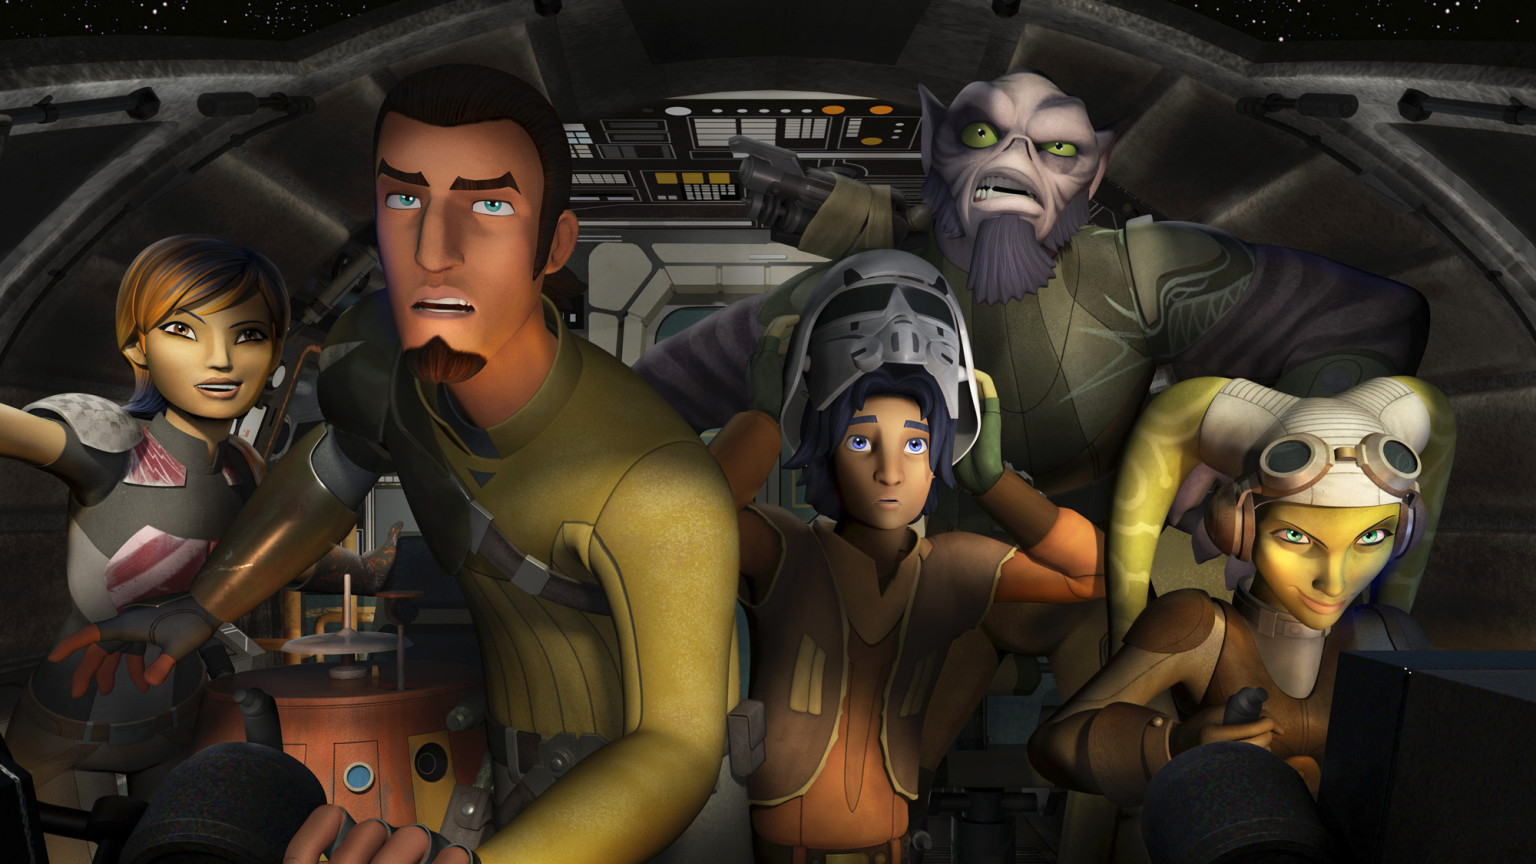 star-wars-rebels-premiere-1536×864-428036123048